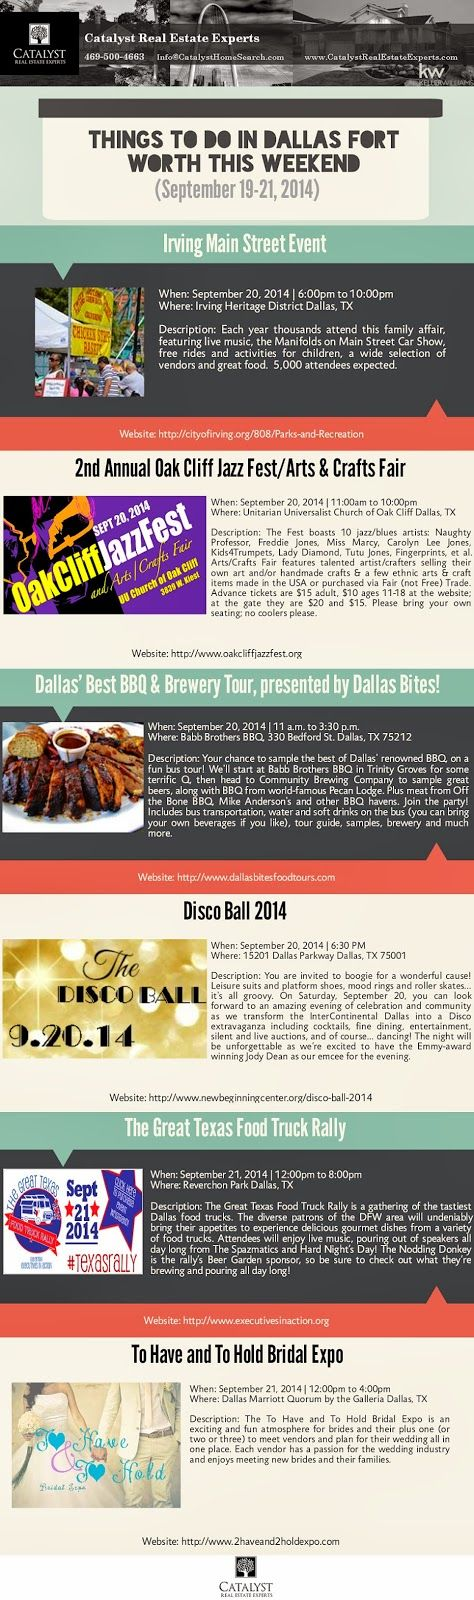 Looking for the something to do in Fort Worth Dallas this weekend? Here are some of the activities you and your family could try! #whattodoindallas   #weekendactivities  #events #dallas